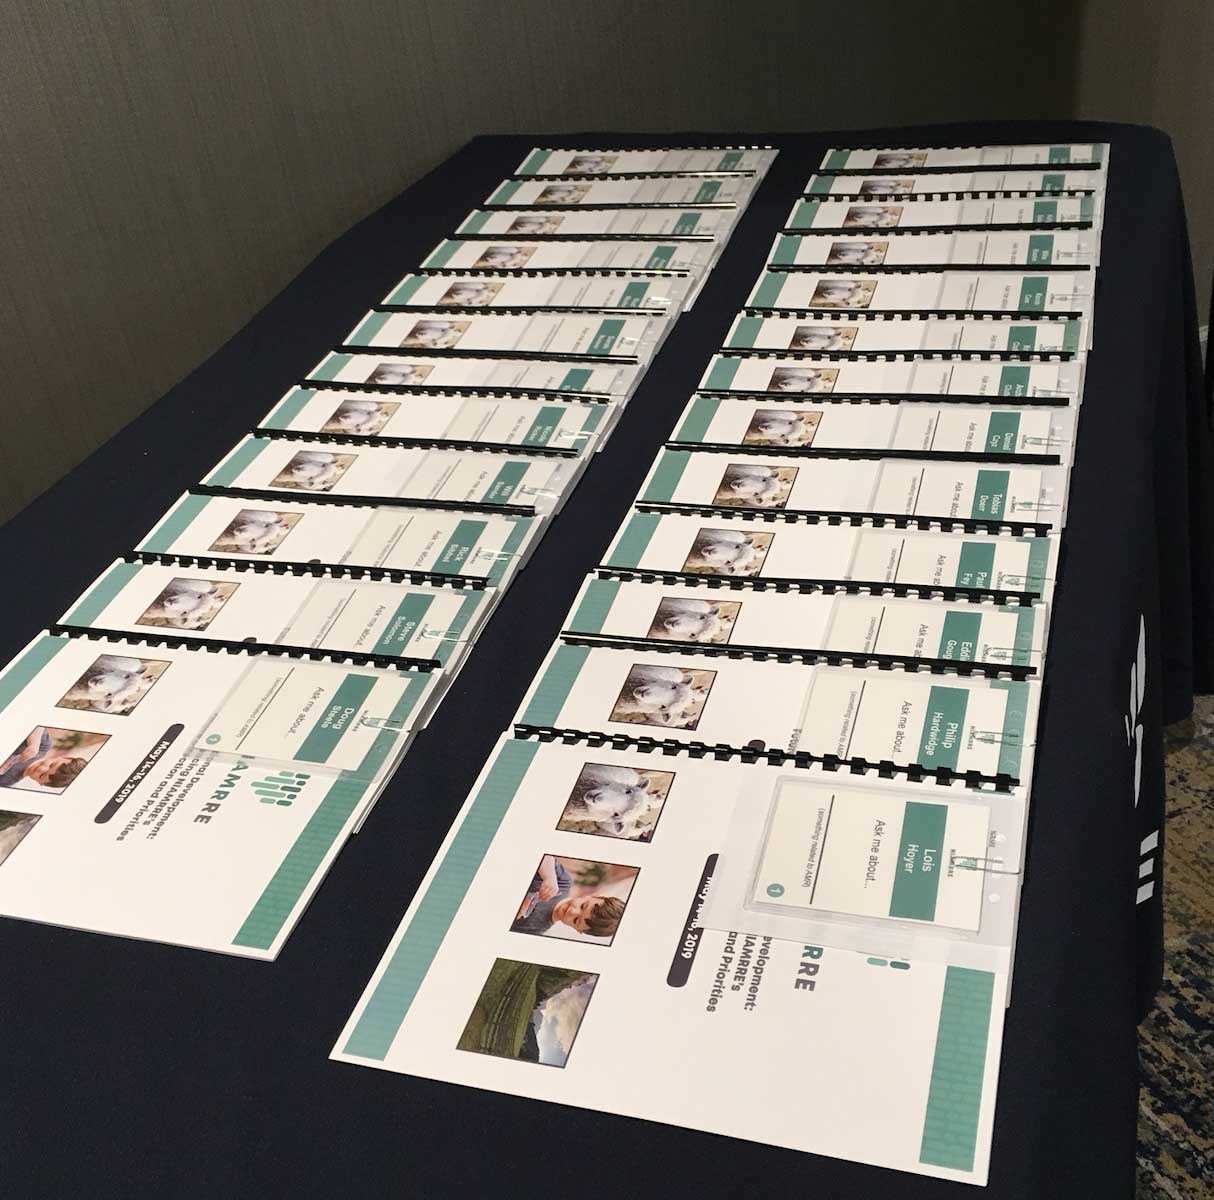 Table displaying teal and white notebooks for NIAMRRE May foundational development meeting in Ames, Iowa